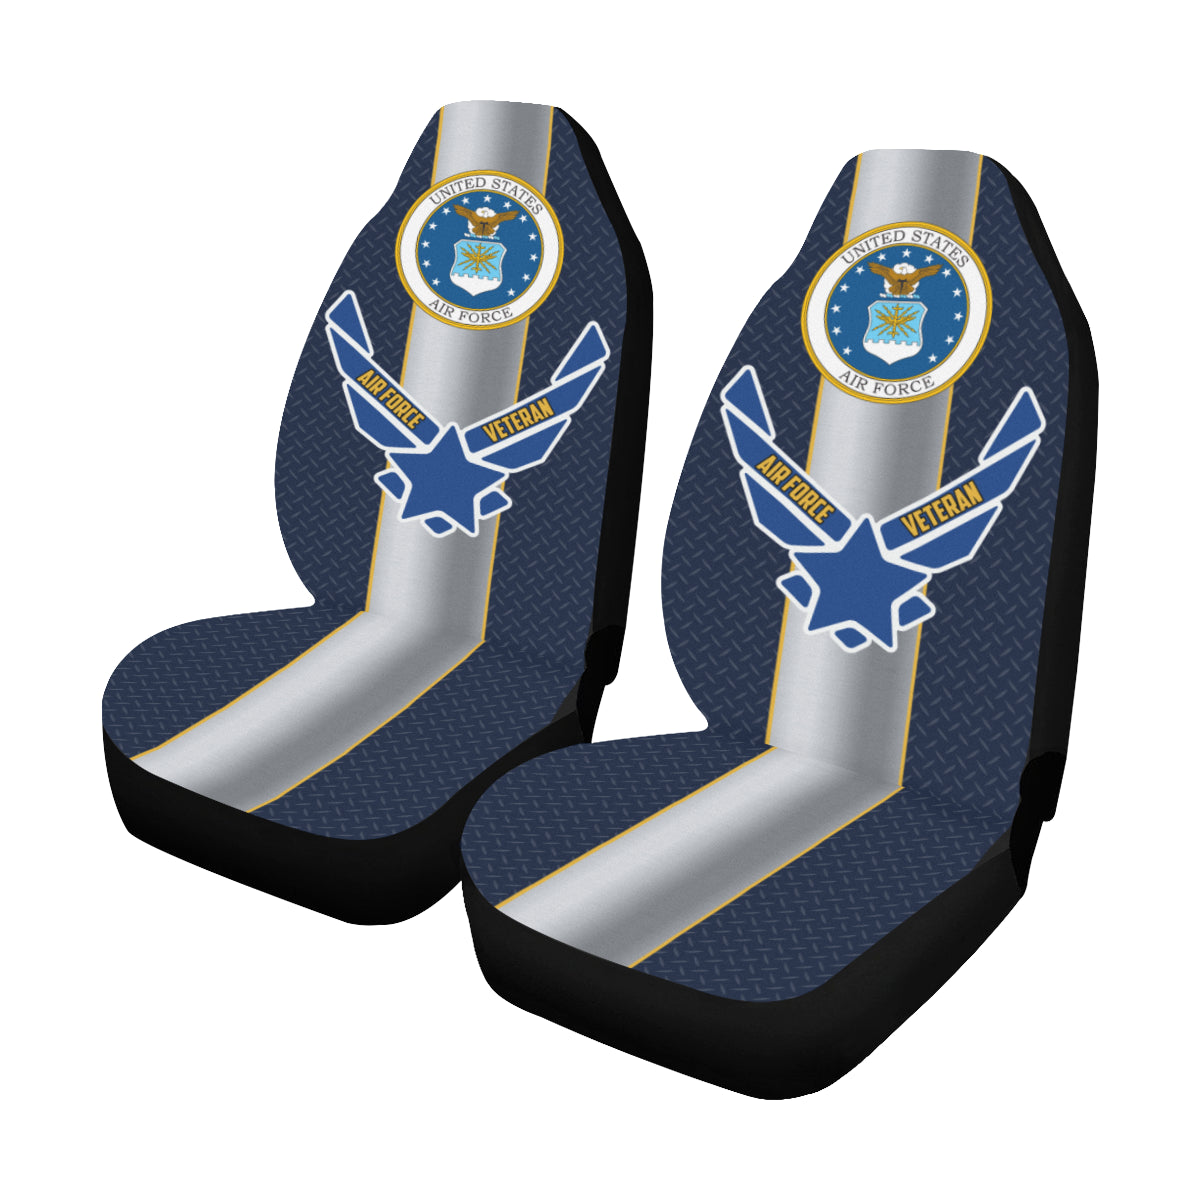 Air Force Car Seat Covers